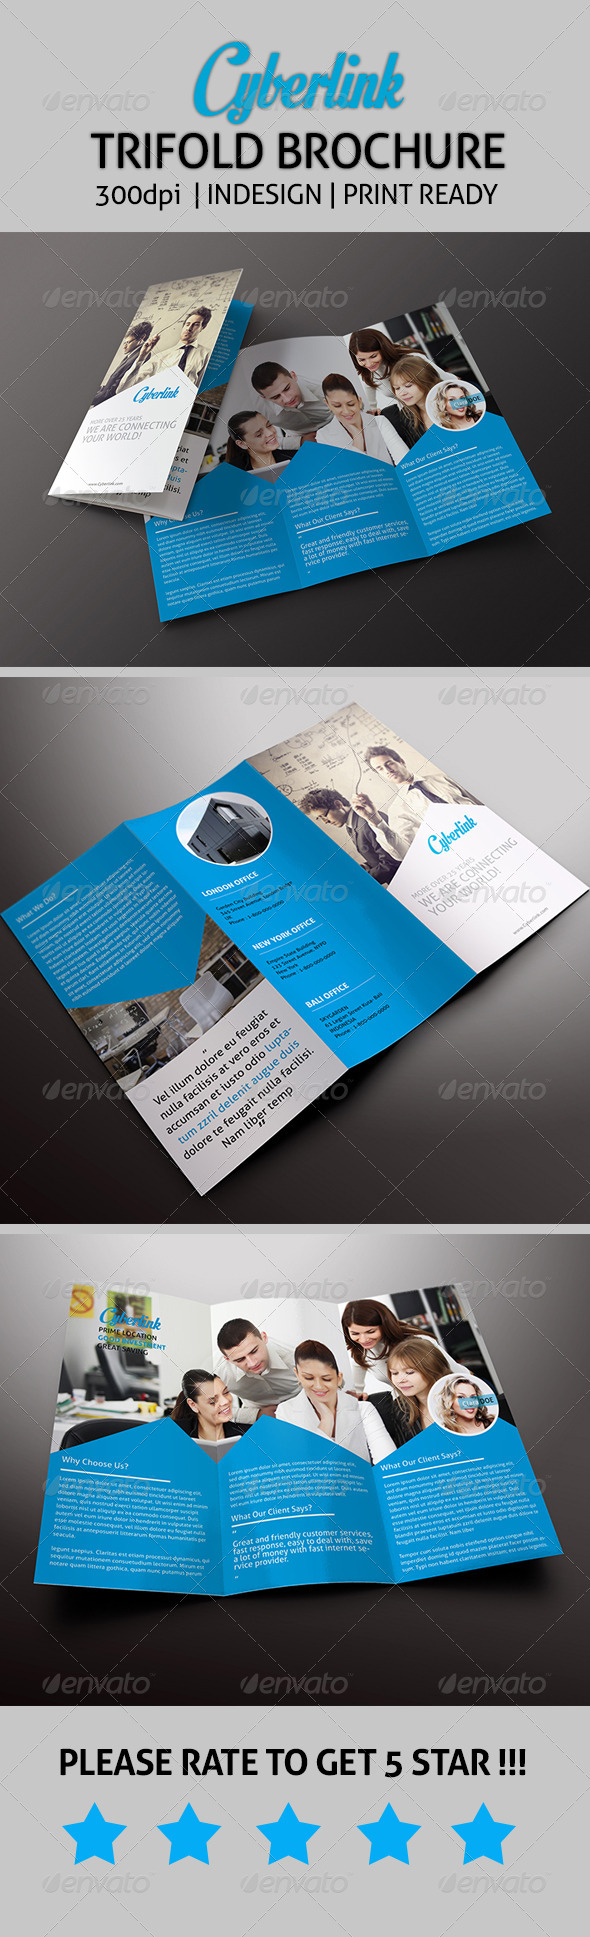 GraphicRiver Cyberlink Trifold Brochure 7740572